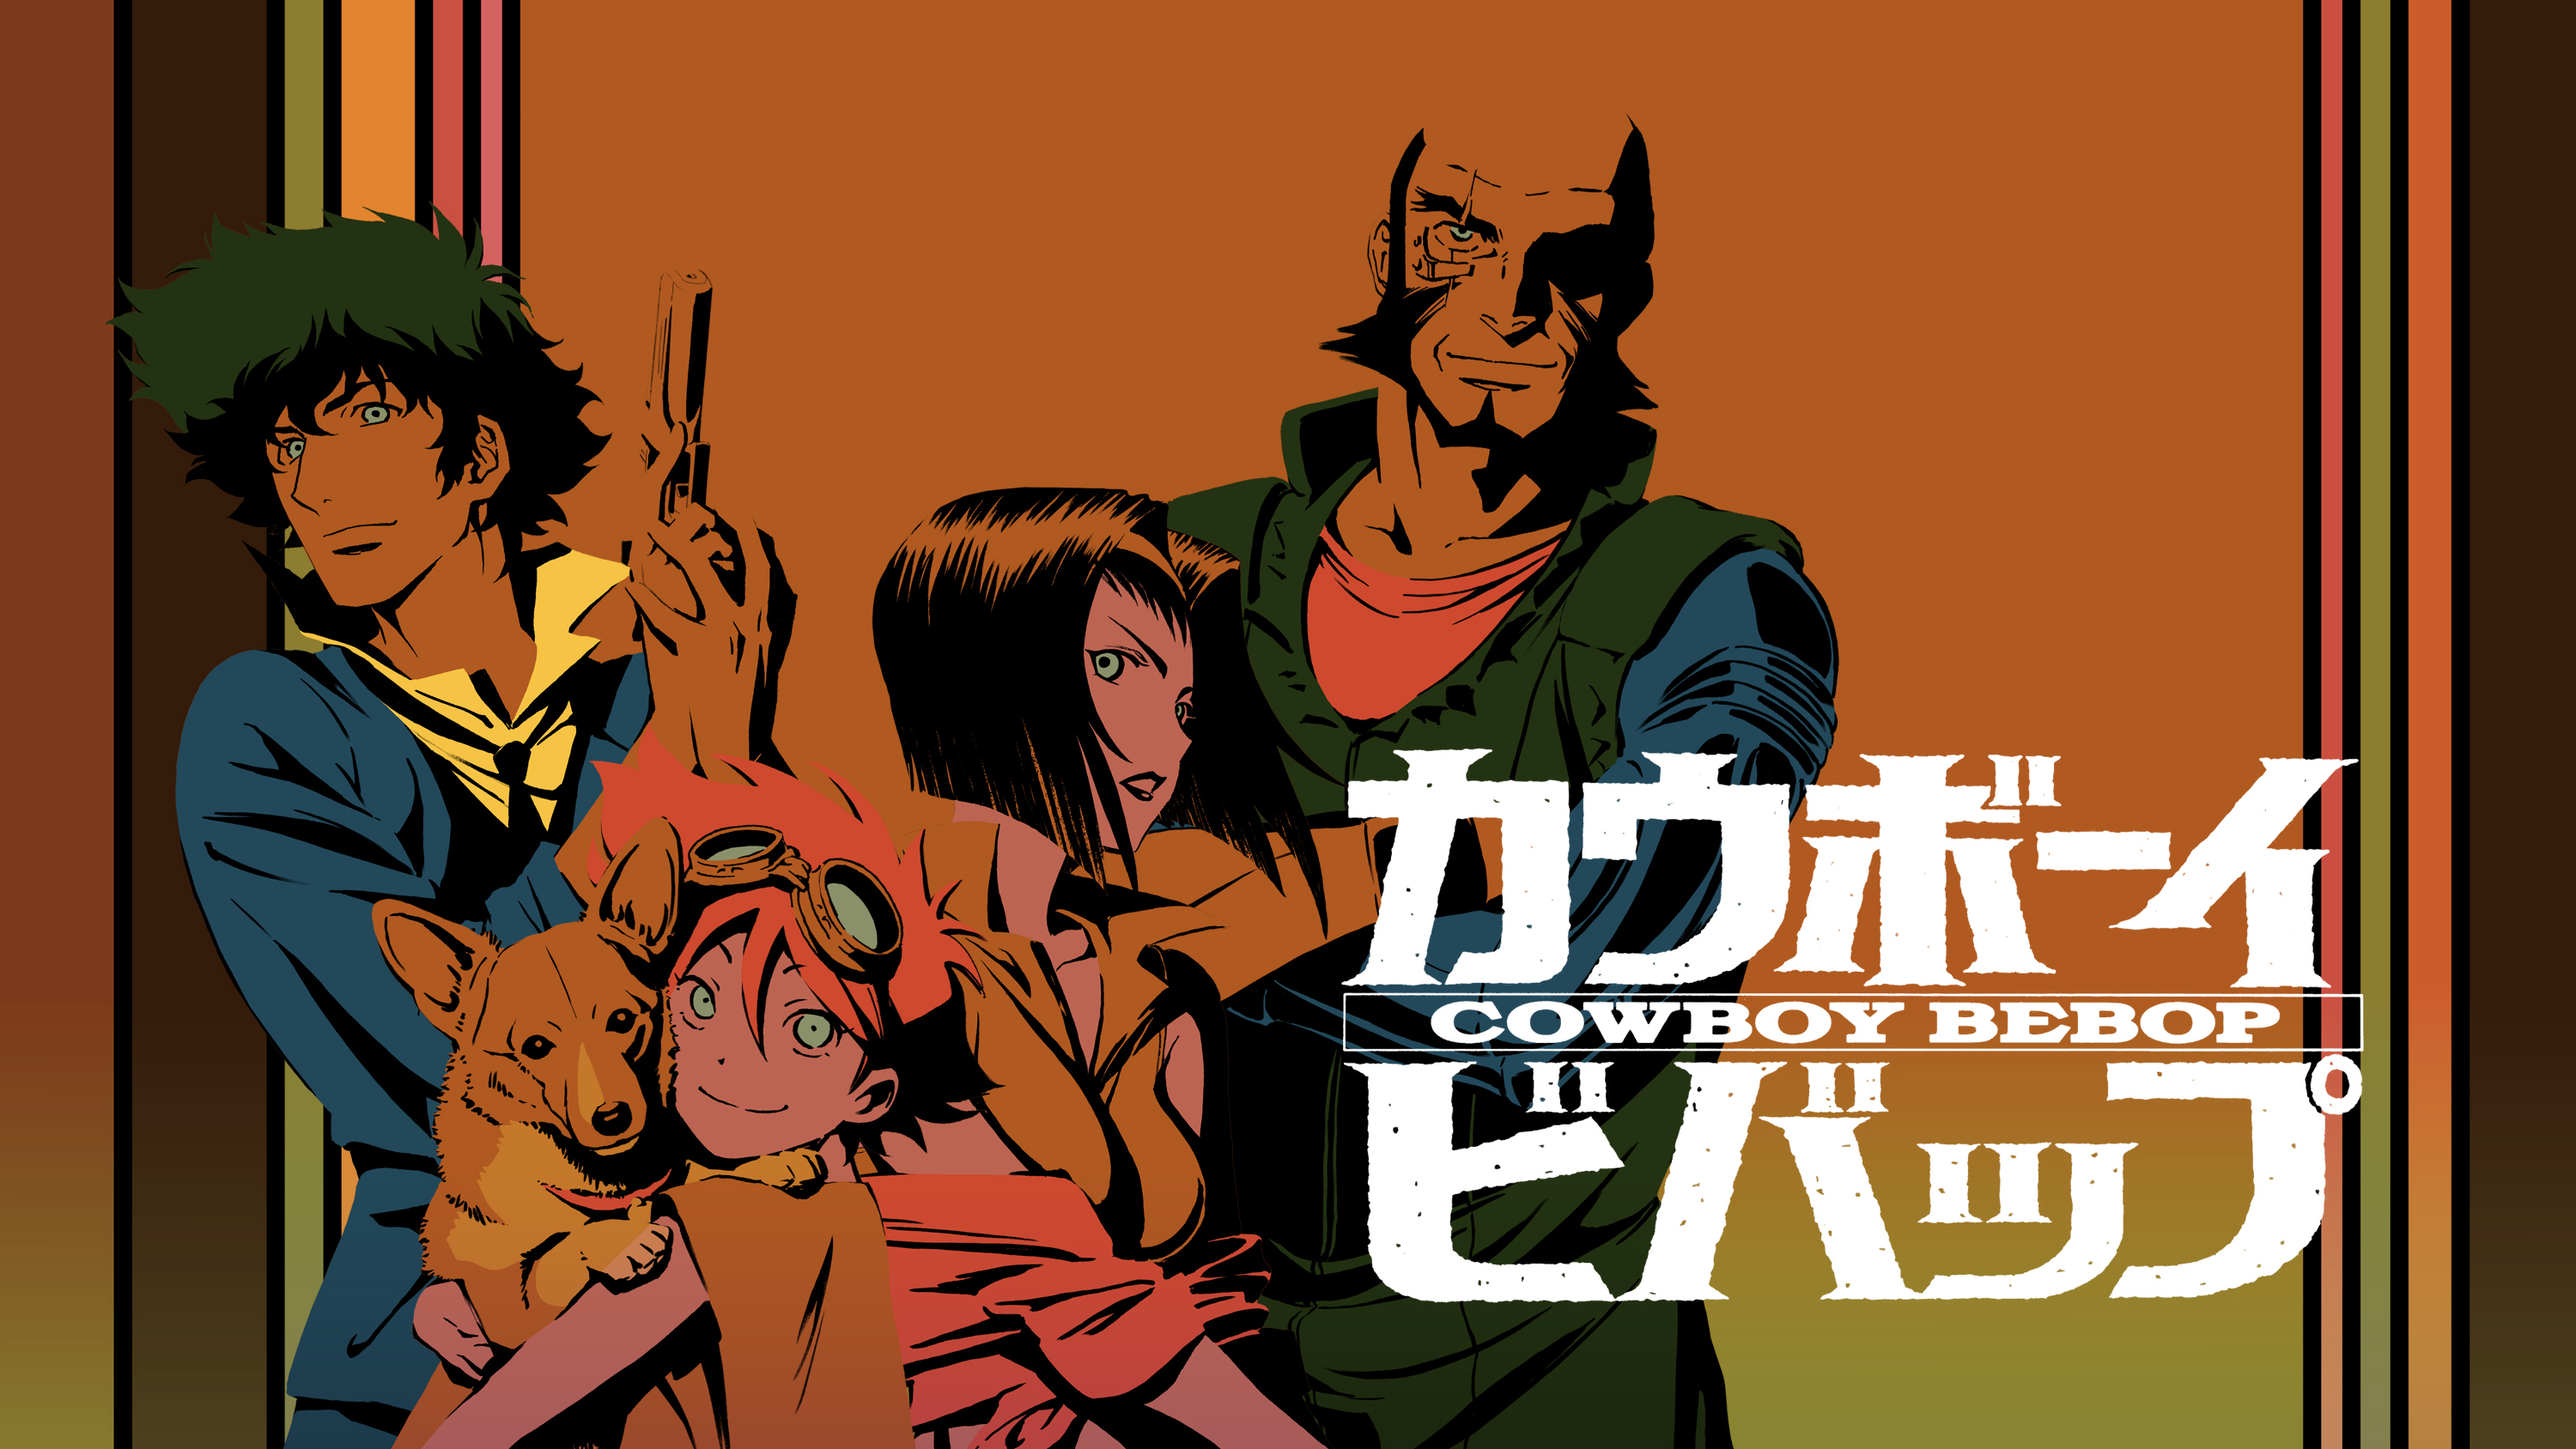 Watch Cowboy Bebop Episodes Sub & Dub | Action/Adventure